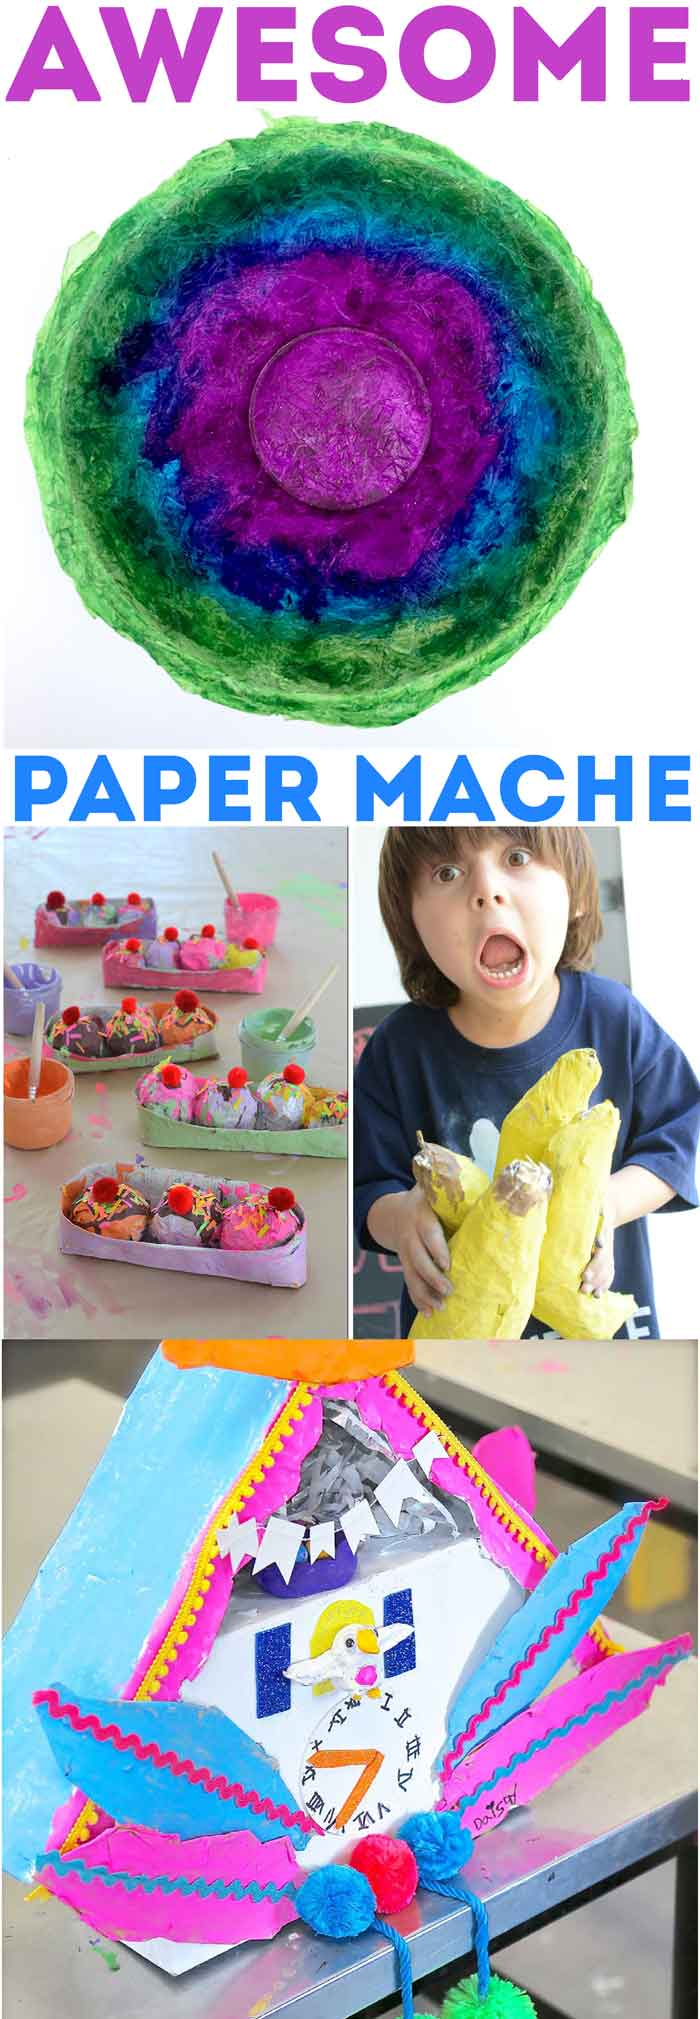 60+ Paper Crafts for kids and adults from the Rockin' Art Moms. Paper Mache Projects